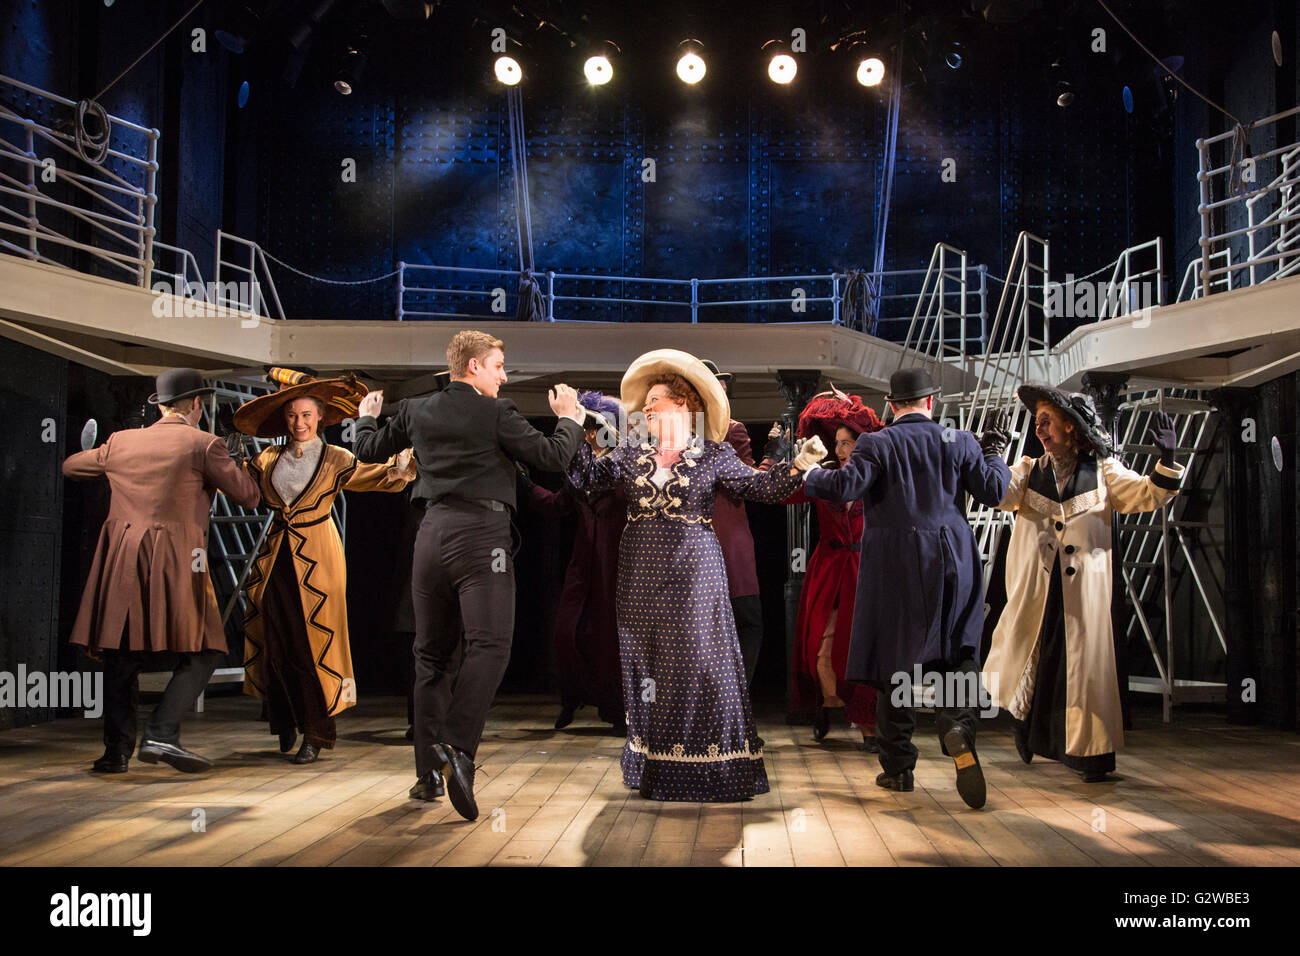 London, UK. 3rd June, 2016. The award-winning musical Titanic by Maury Yeston and Peter Stone opens at Charing Cross - Stock Image